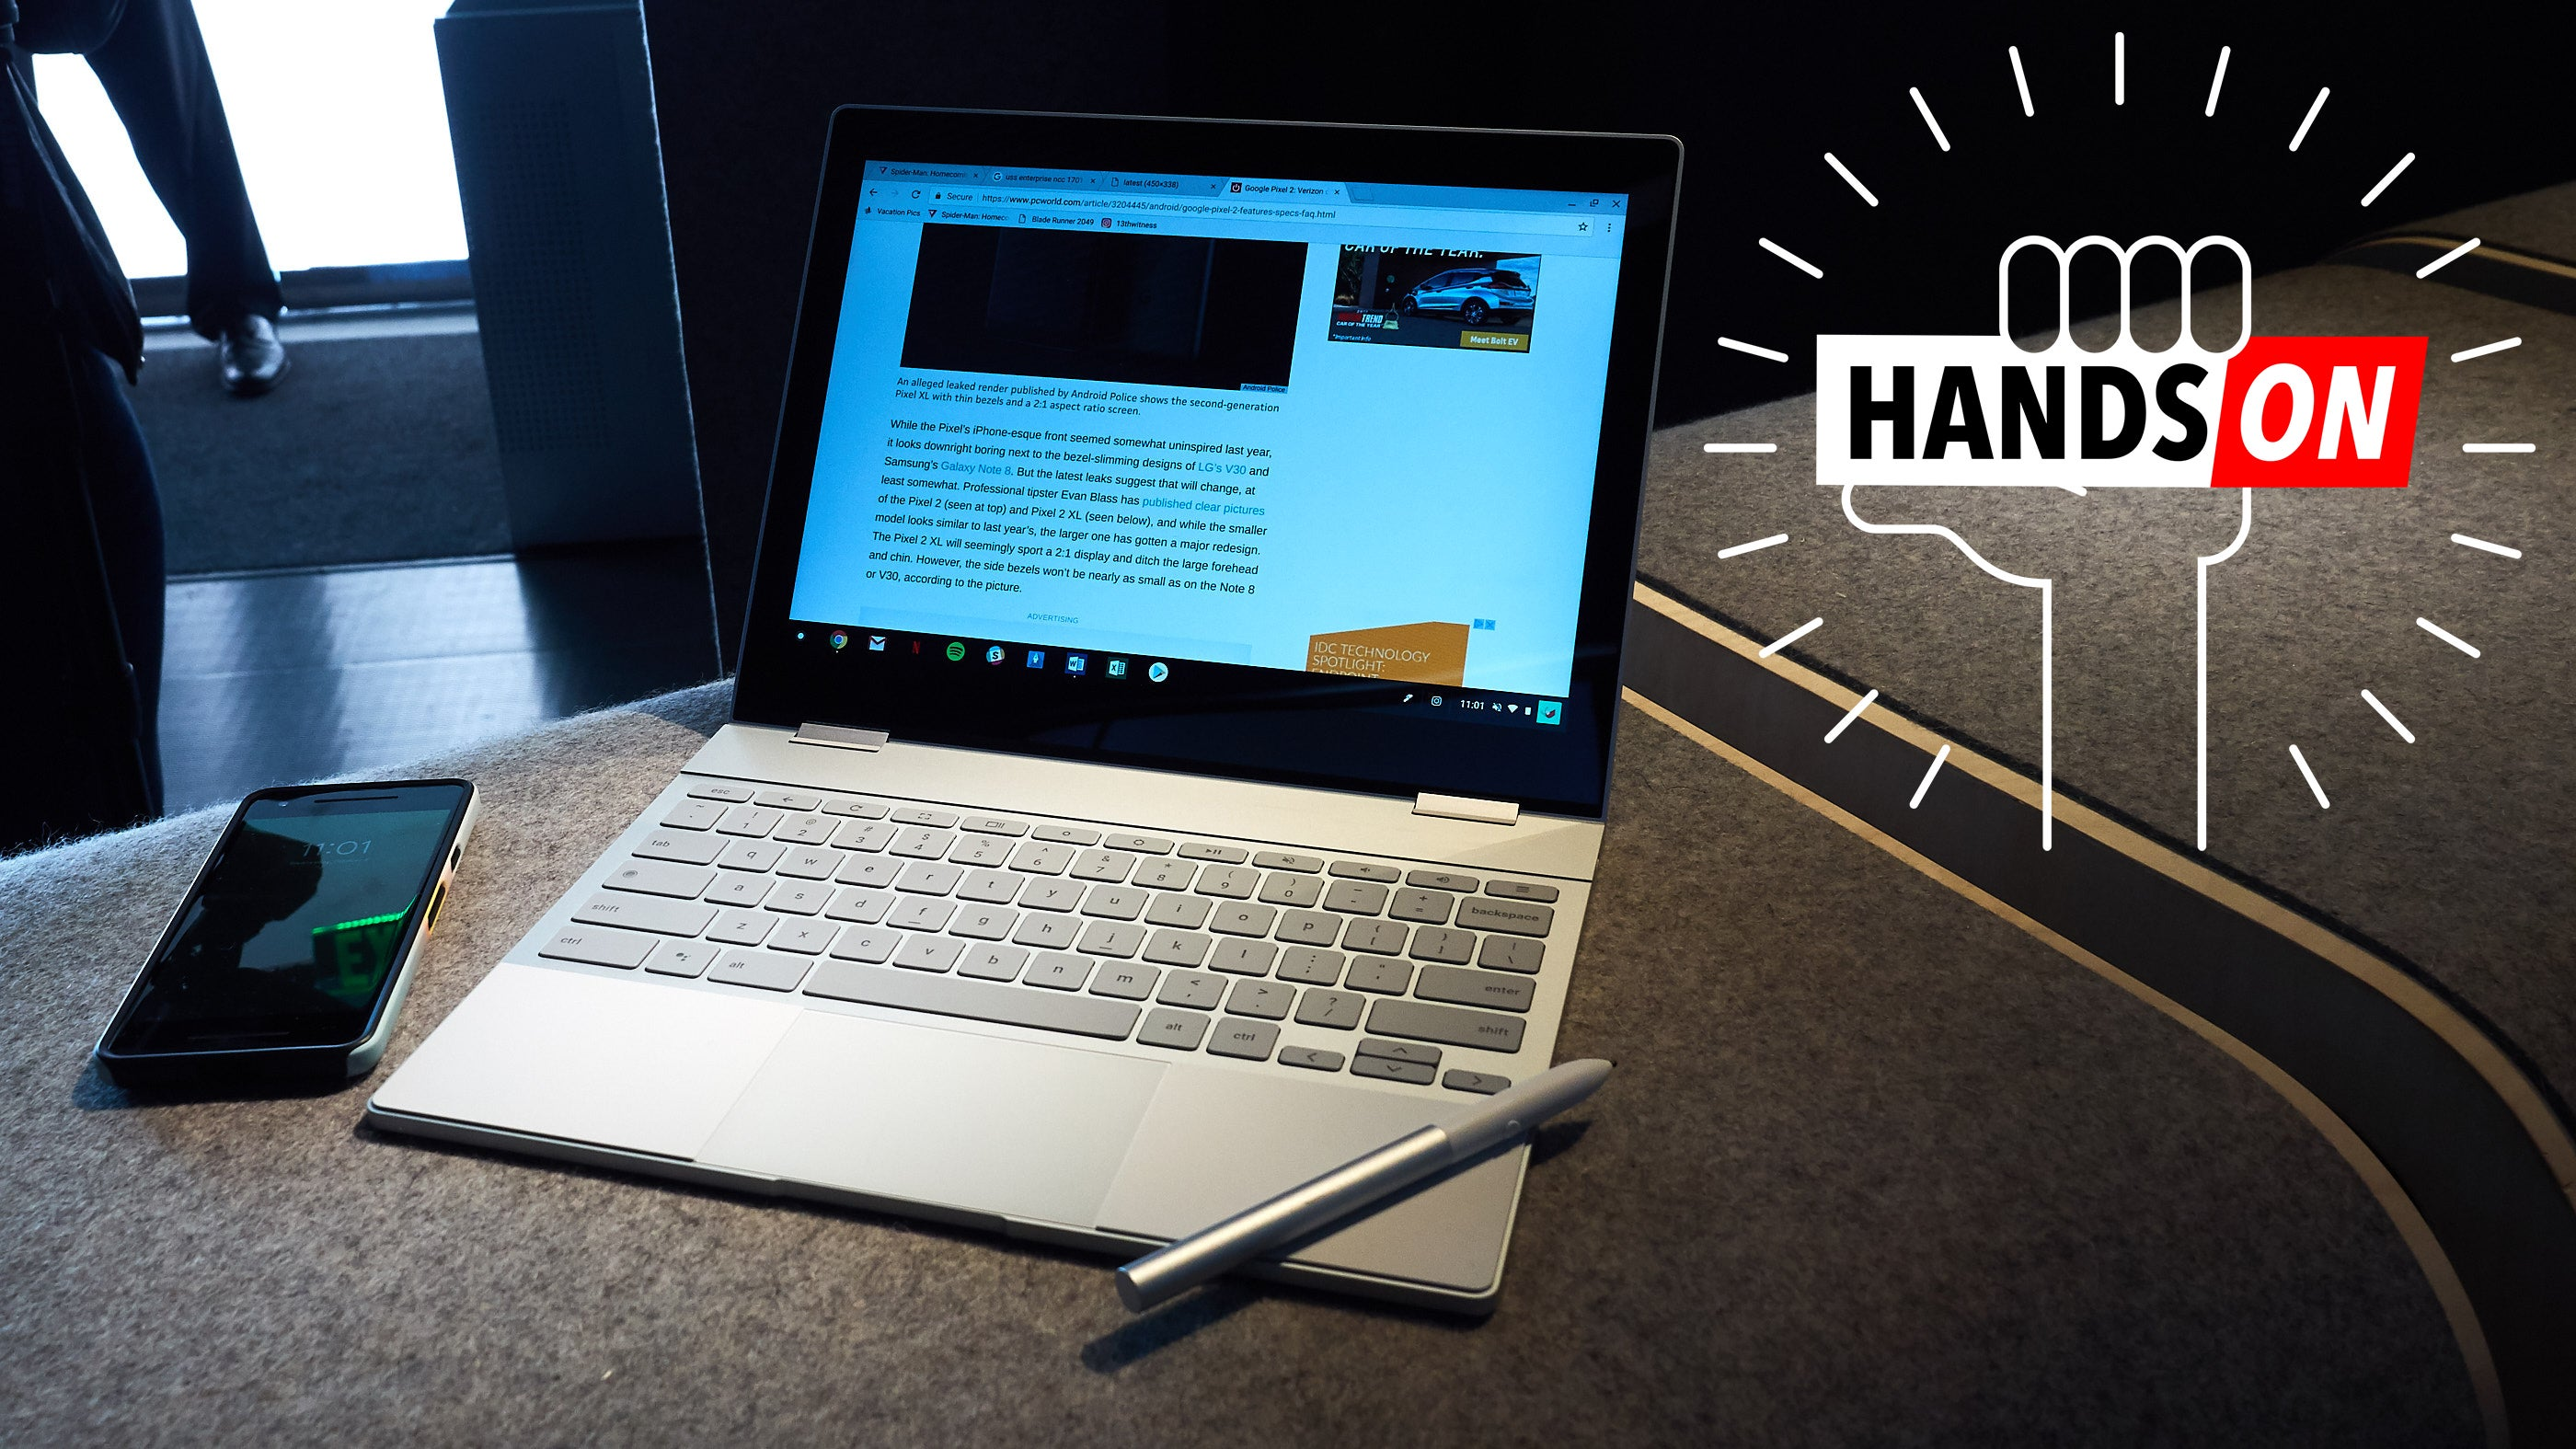 Google Pixelbook: The Gizmodo Hands-On